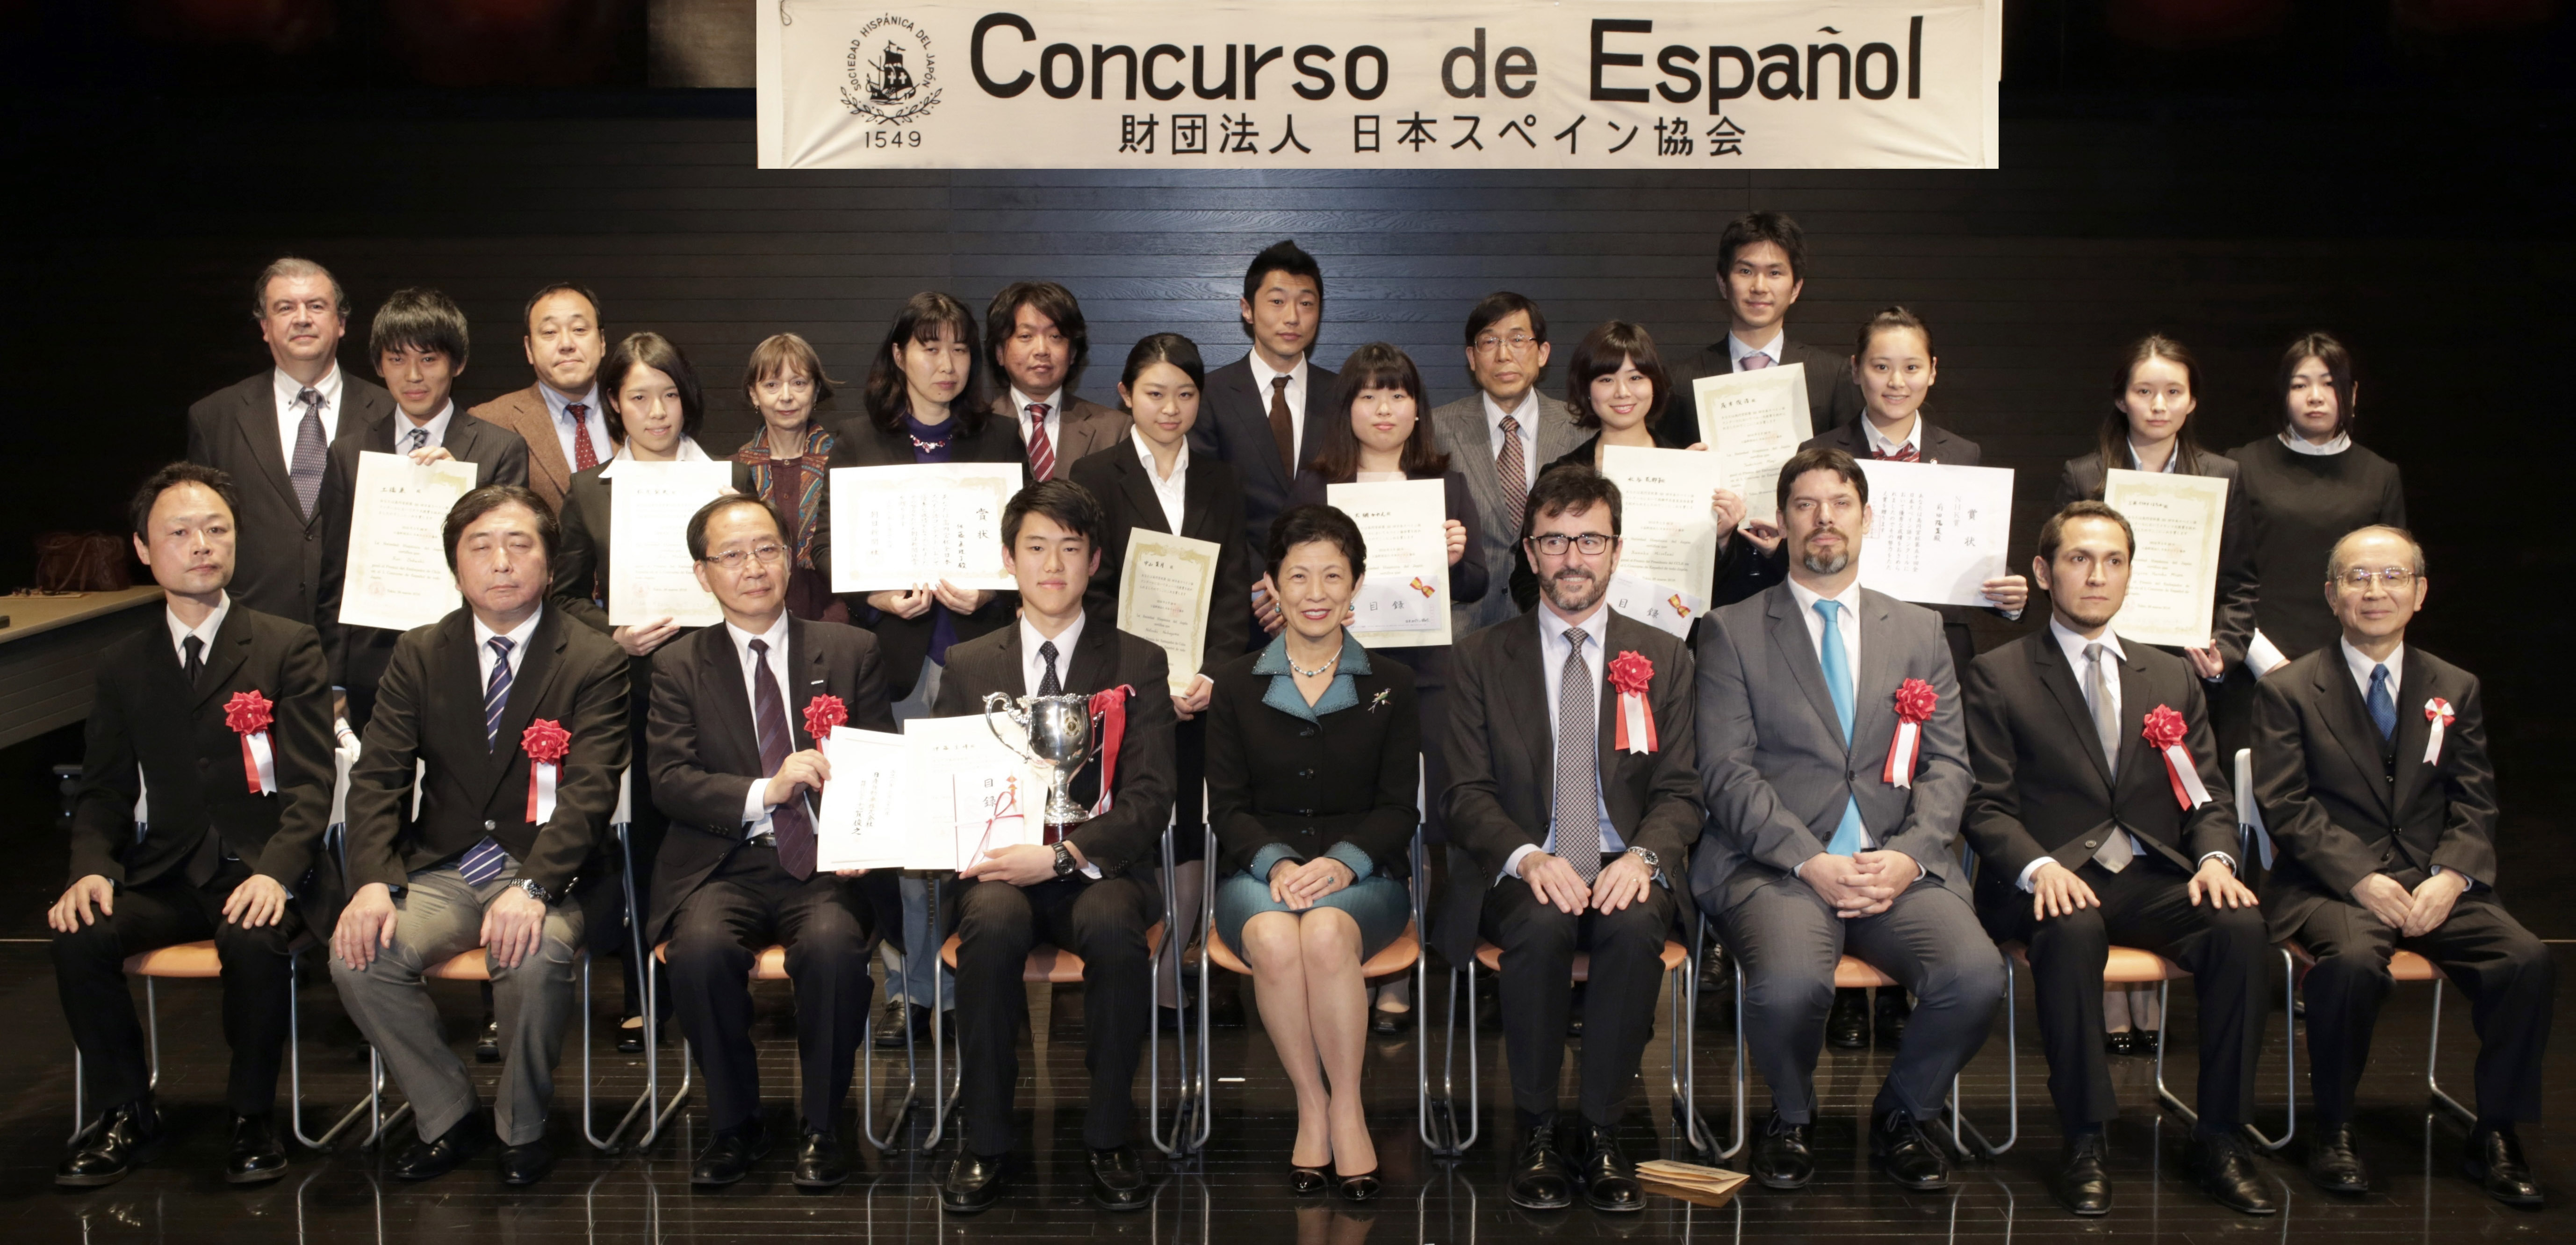 The Foundation Japan Spanish Society held the 50th All Japan Spanish Speech Contest on March 26 at Libra Hall in Tamachi, Tokyo. Pictured are Honorary Patron Princess Takamado (front row, center), winner Kazune Ito of Kanagawa Sogo High School (holding the Prince Takamado Cup) along with (from left) Liadro Japan Manager Tetsuro Bozawa; Nissan Motor Co. General Manager Katsuaki Yasuda; Junya Kaku, Minato Ward director of Global Community, Art and Culture Planning, Industry and Community Promotion Support Department; Spain Charge d'affaires ad interim Carlos Maldonado; Chile Counsellor Felipe Diaz; Peru Third Secretary Amador Pantoja; and Masami Takemoto, director of the society. | THE JAPAN SPANISH SOCIETY